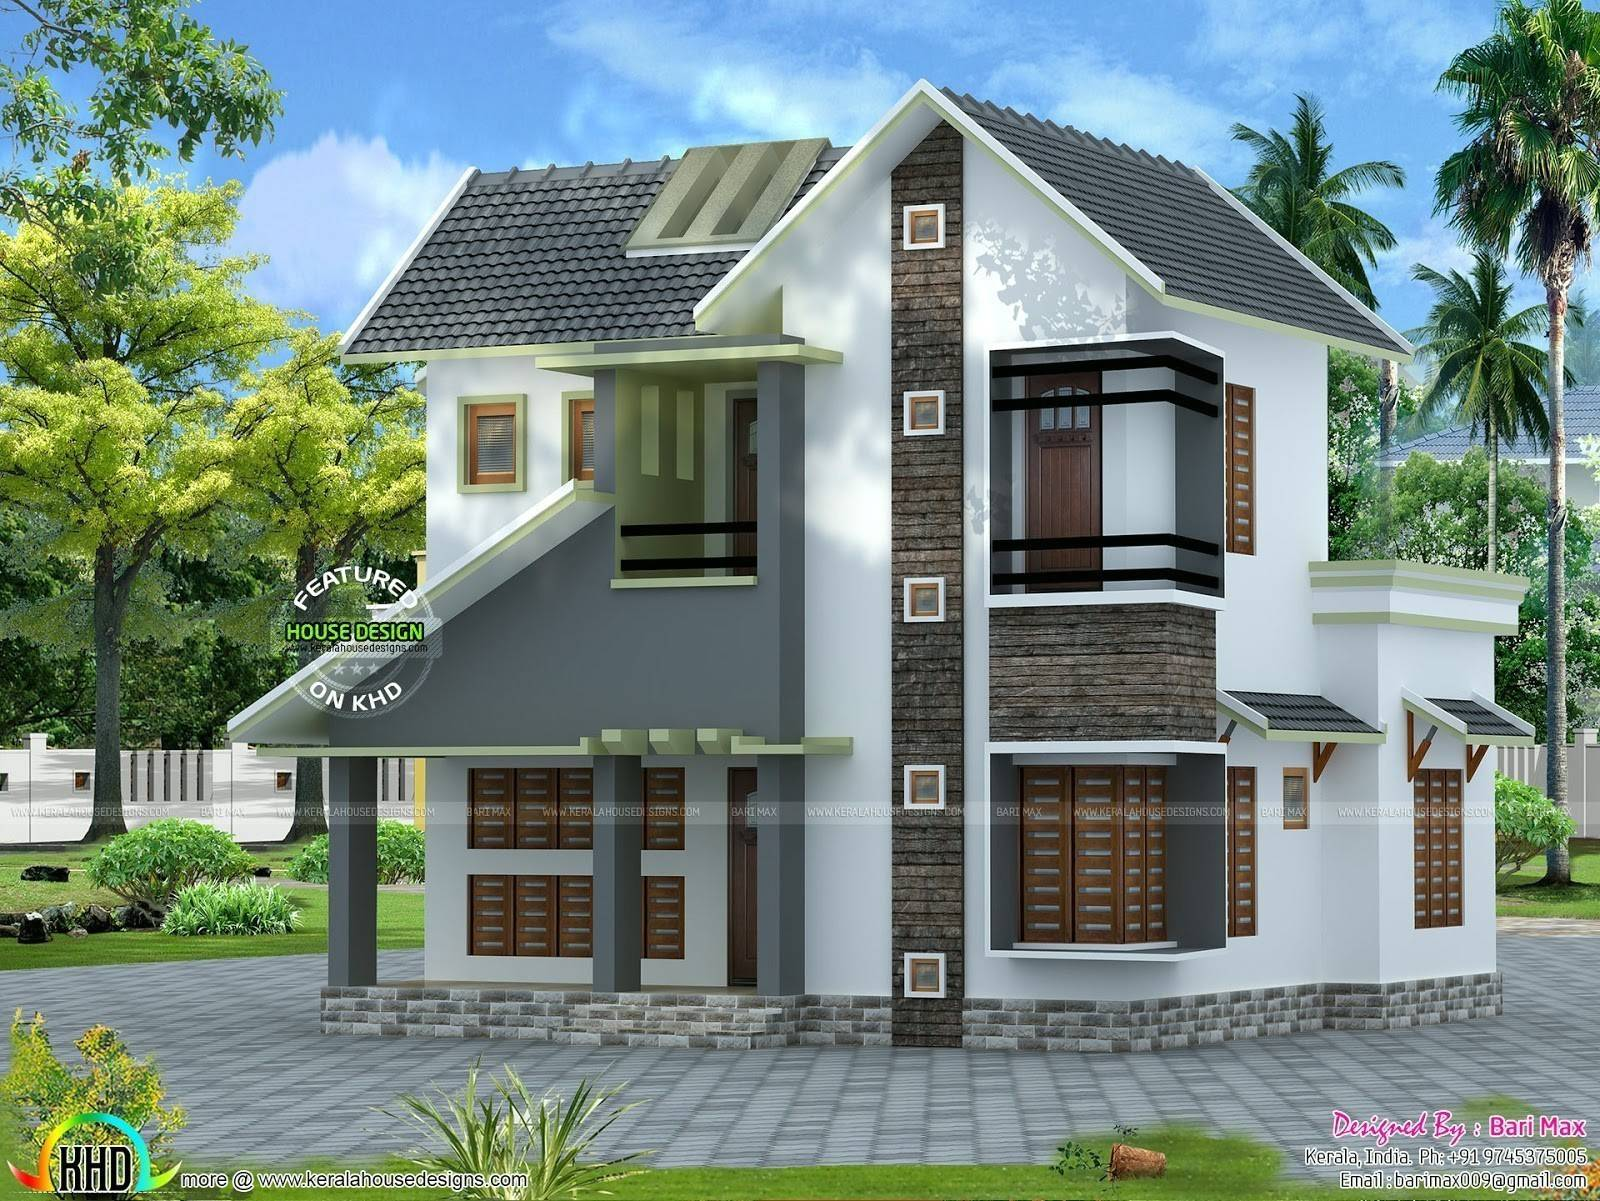 house plans with simple roof designs also estate home plans luxury small brick house plans unique our homes 0d of house plans with simple roof designs